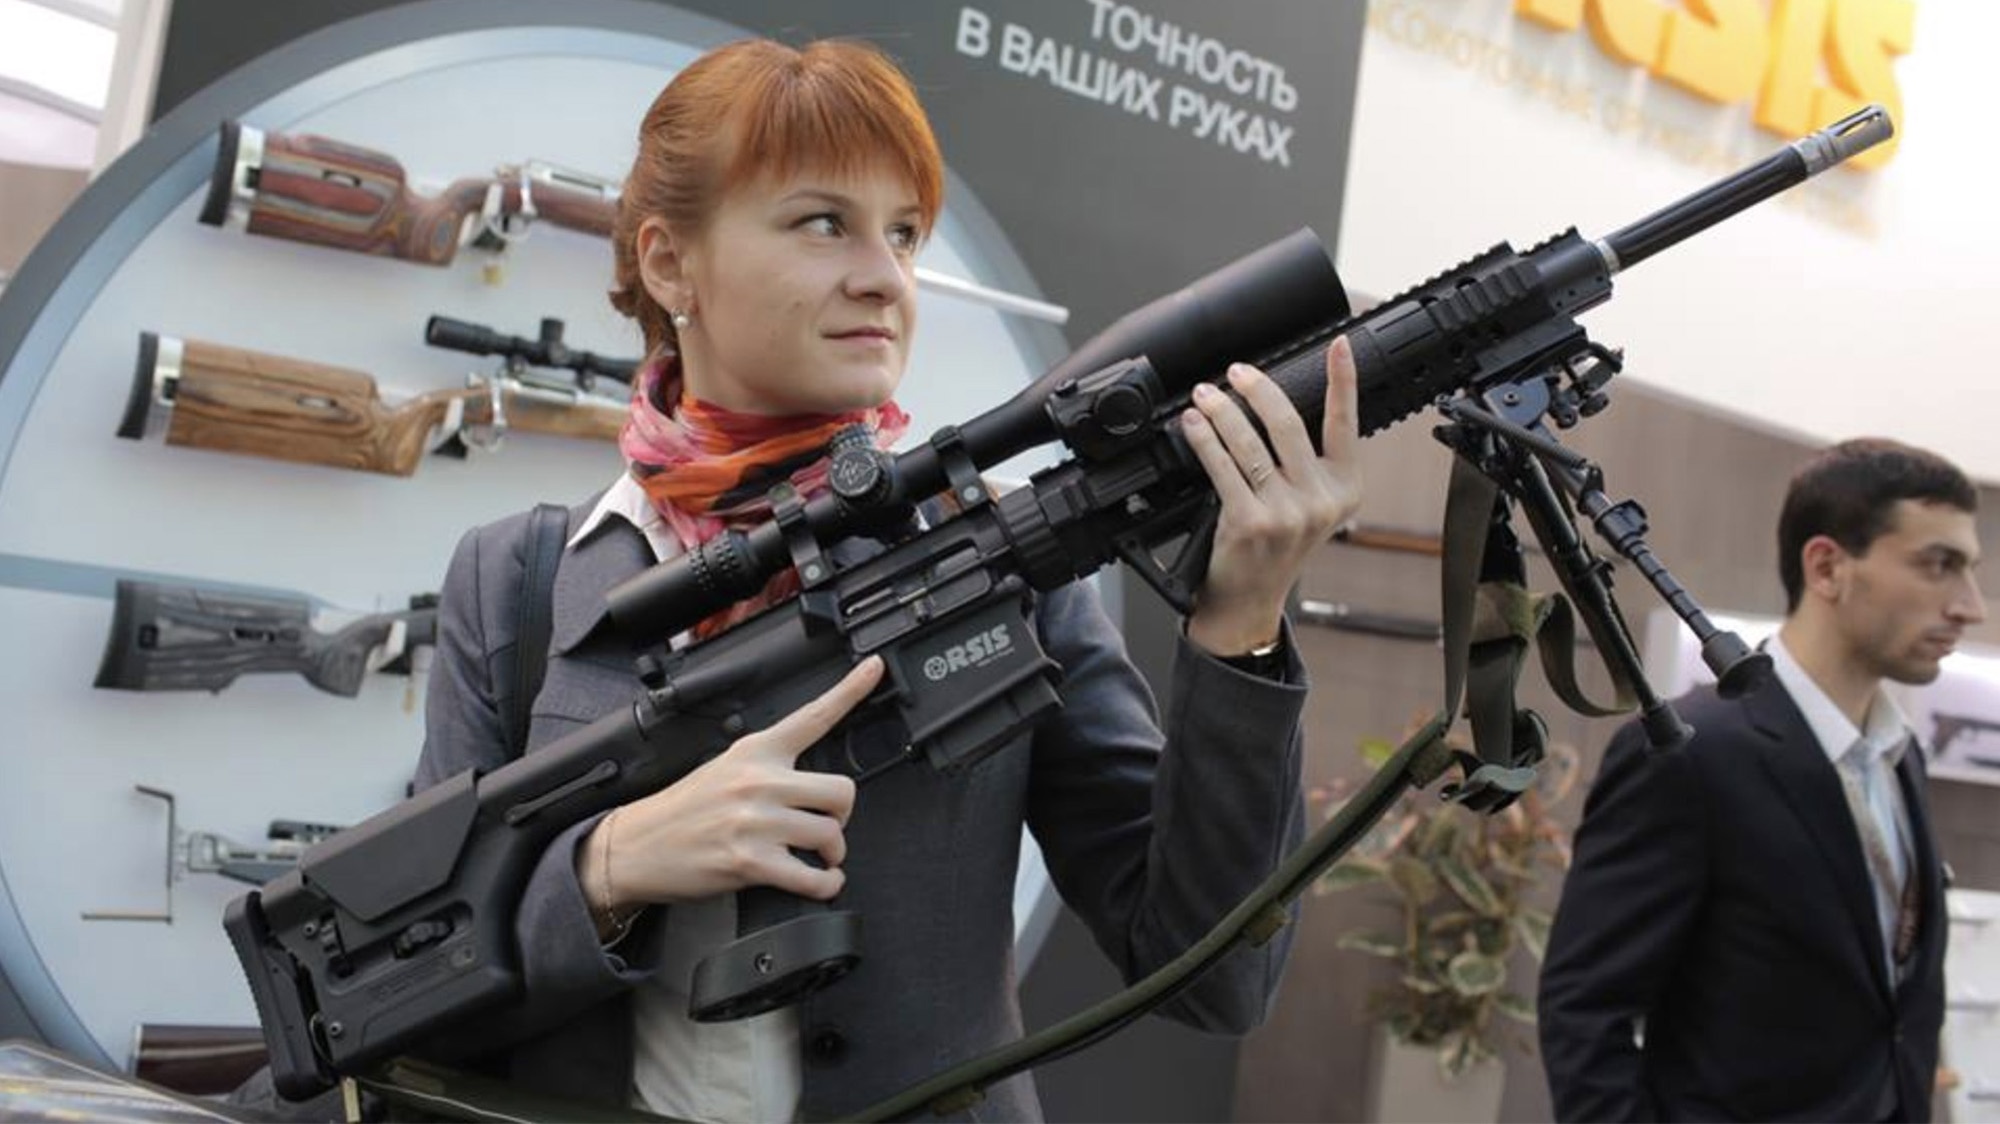 69998daa274d The NRA Welcomed Maria Butina—Even As She Worked to Arm Anti-American Thugs  Abroad